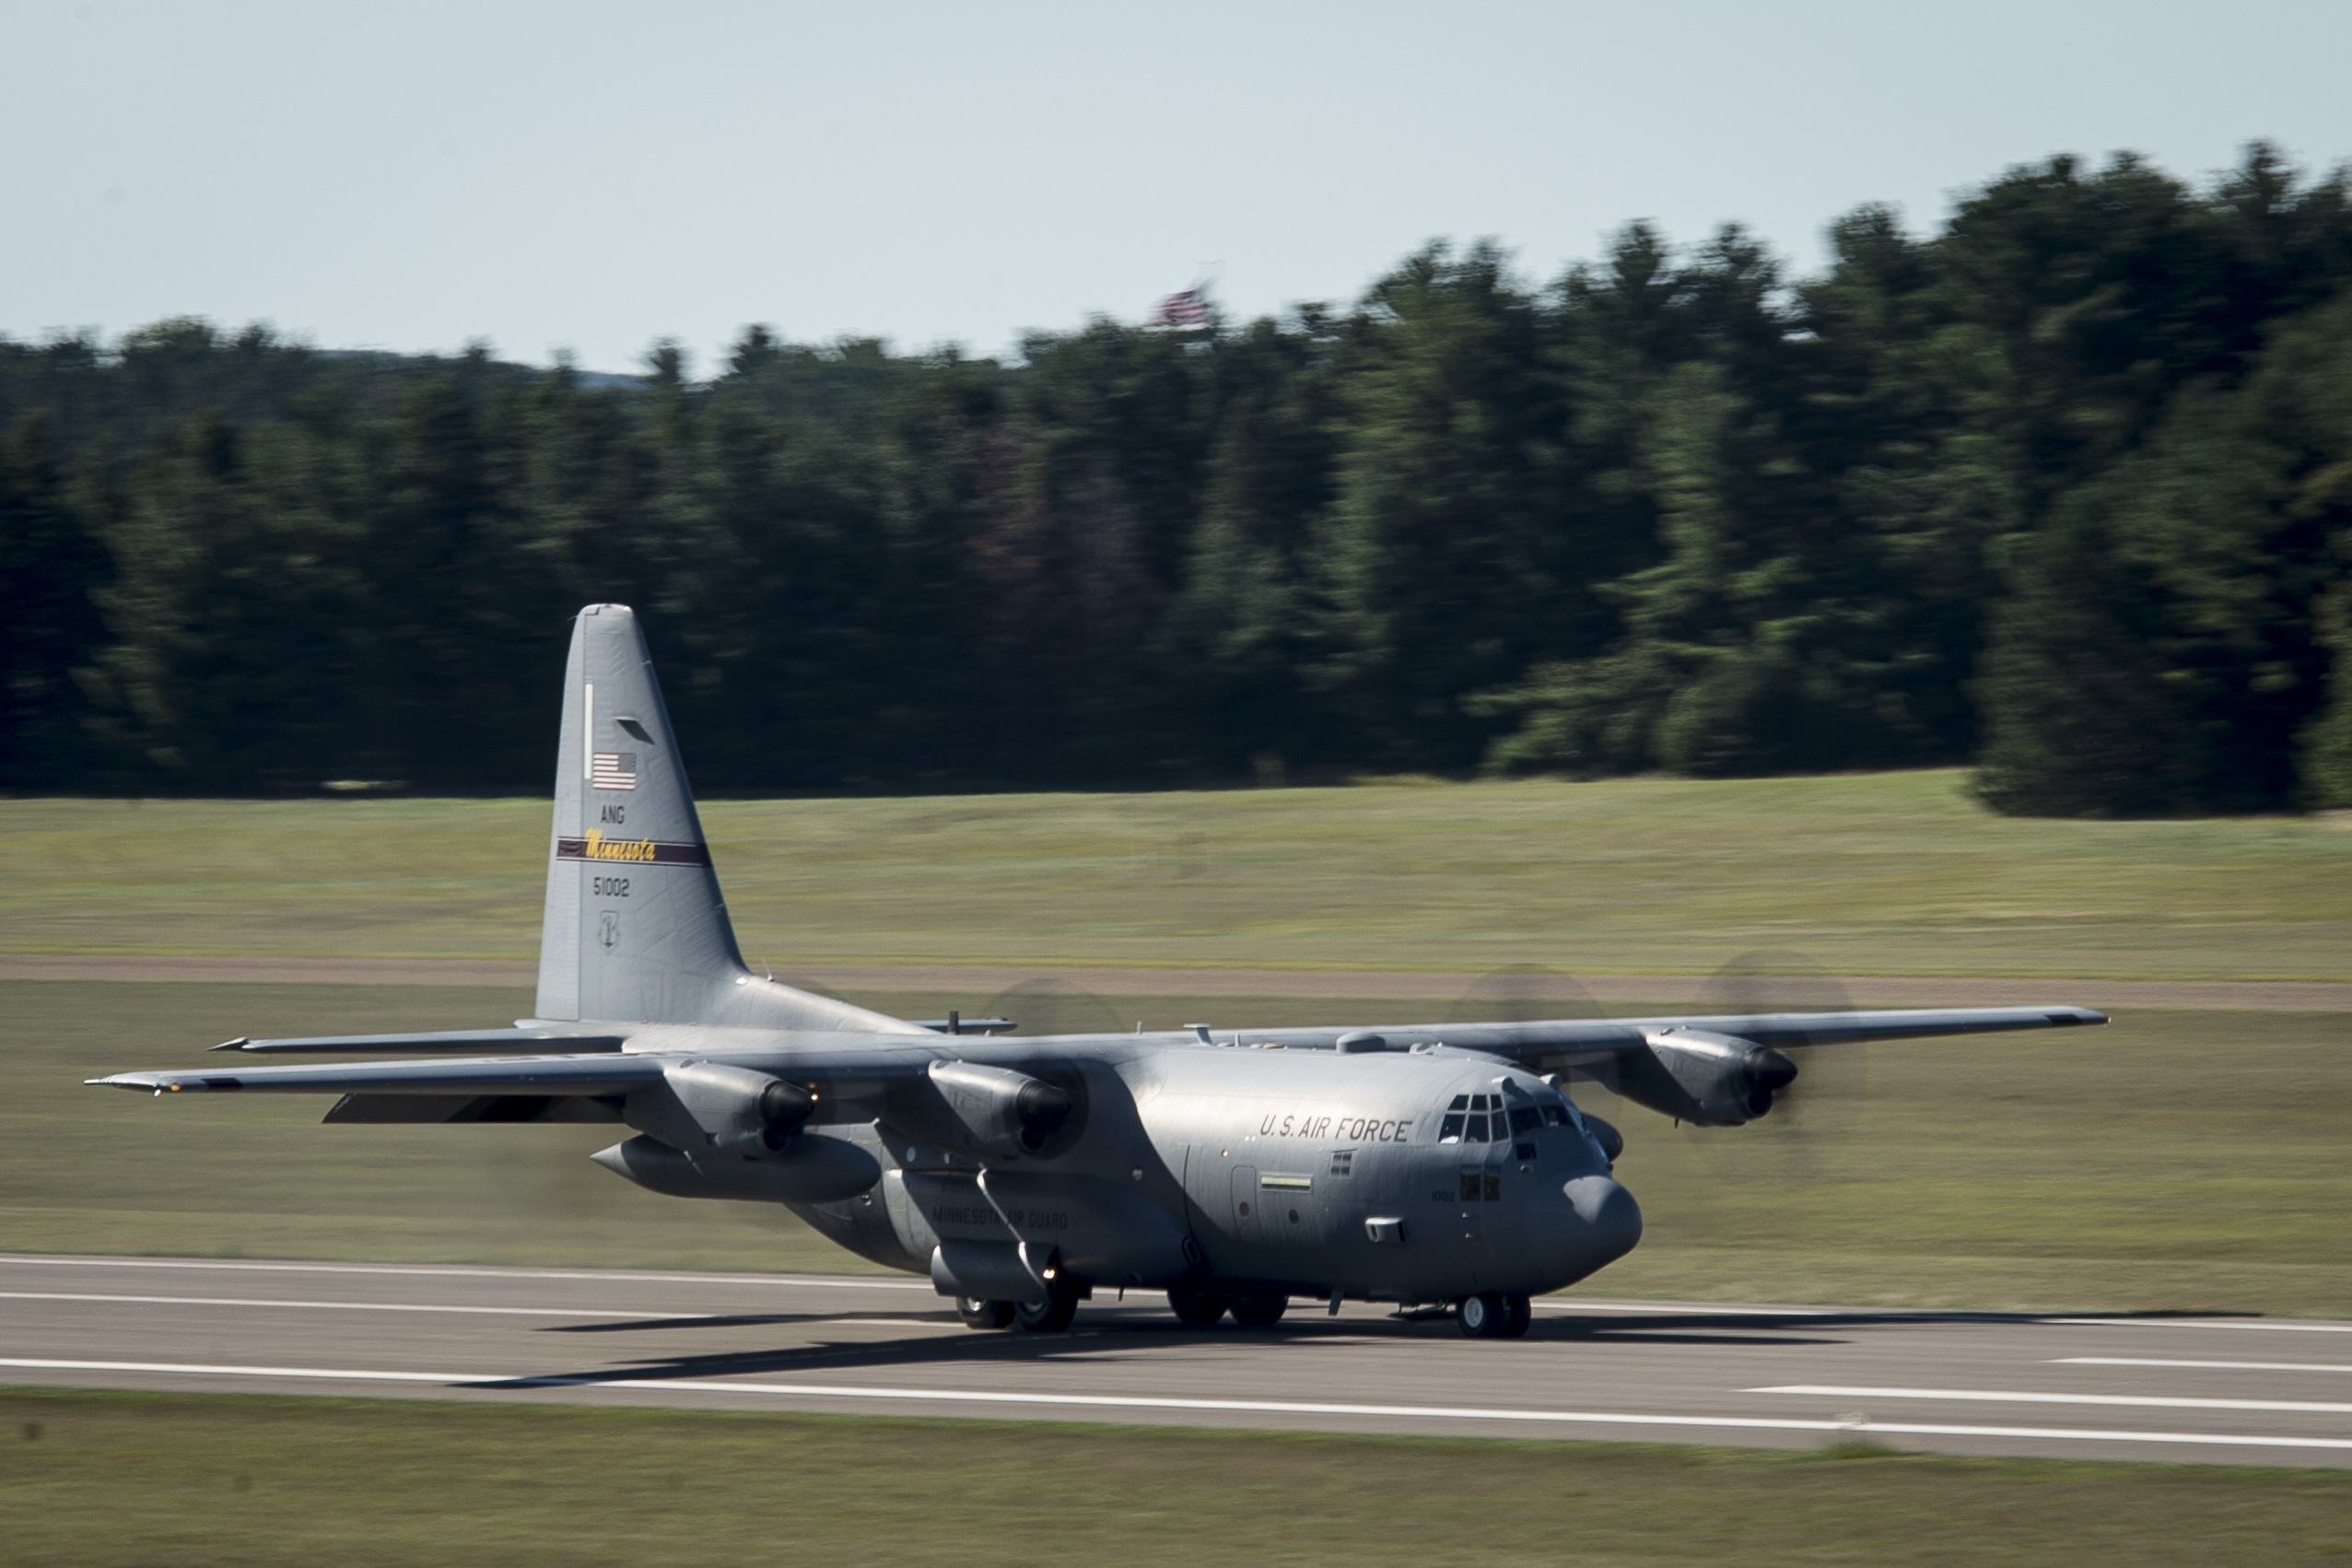 A C-130 aircraft landed at Camp Ripley in Little Falls during a training exercise in 2015.